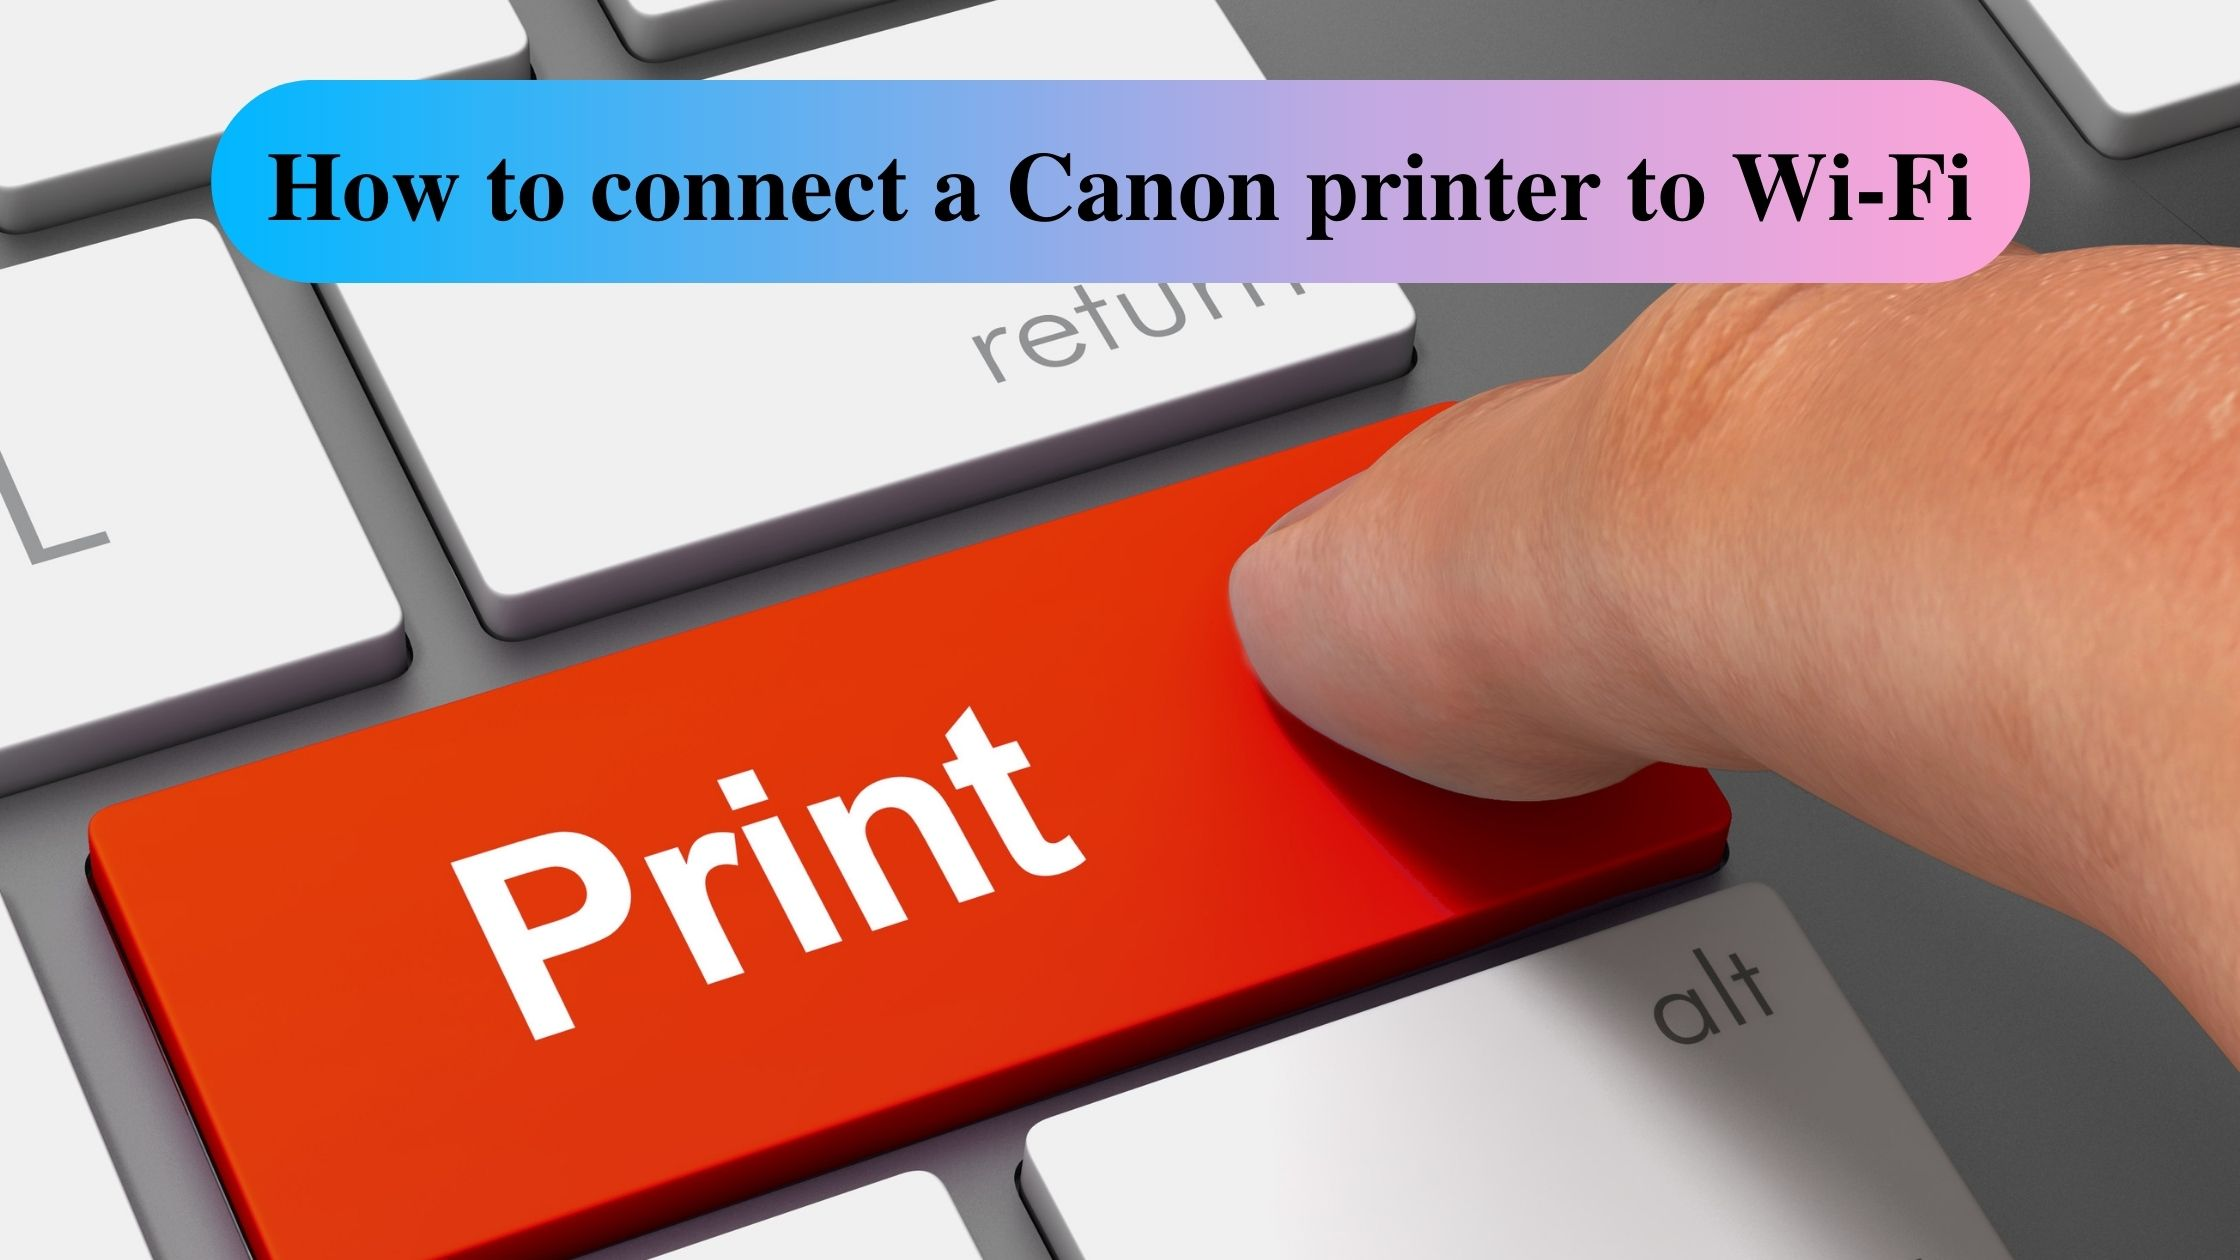 How to connect a Canon printer to Wi-Fi